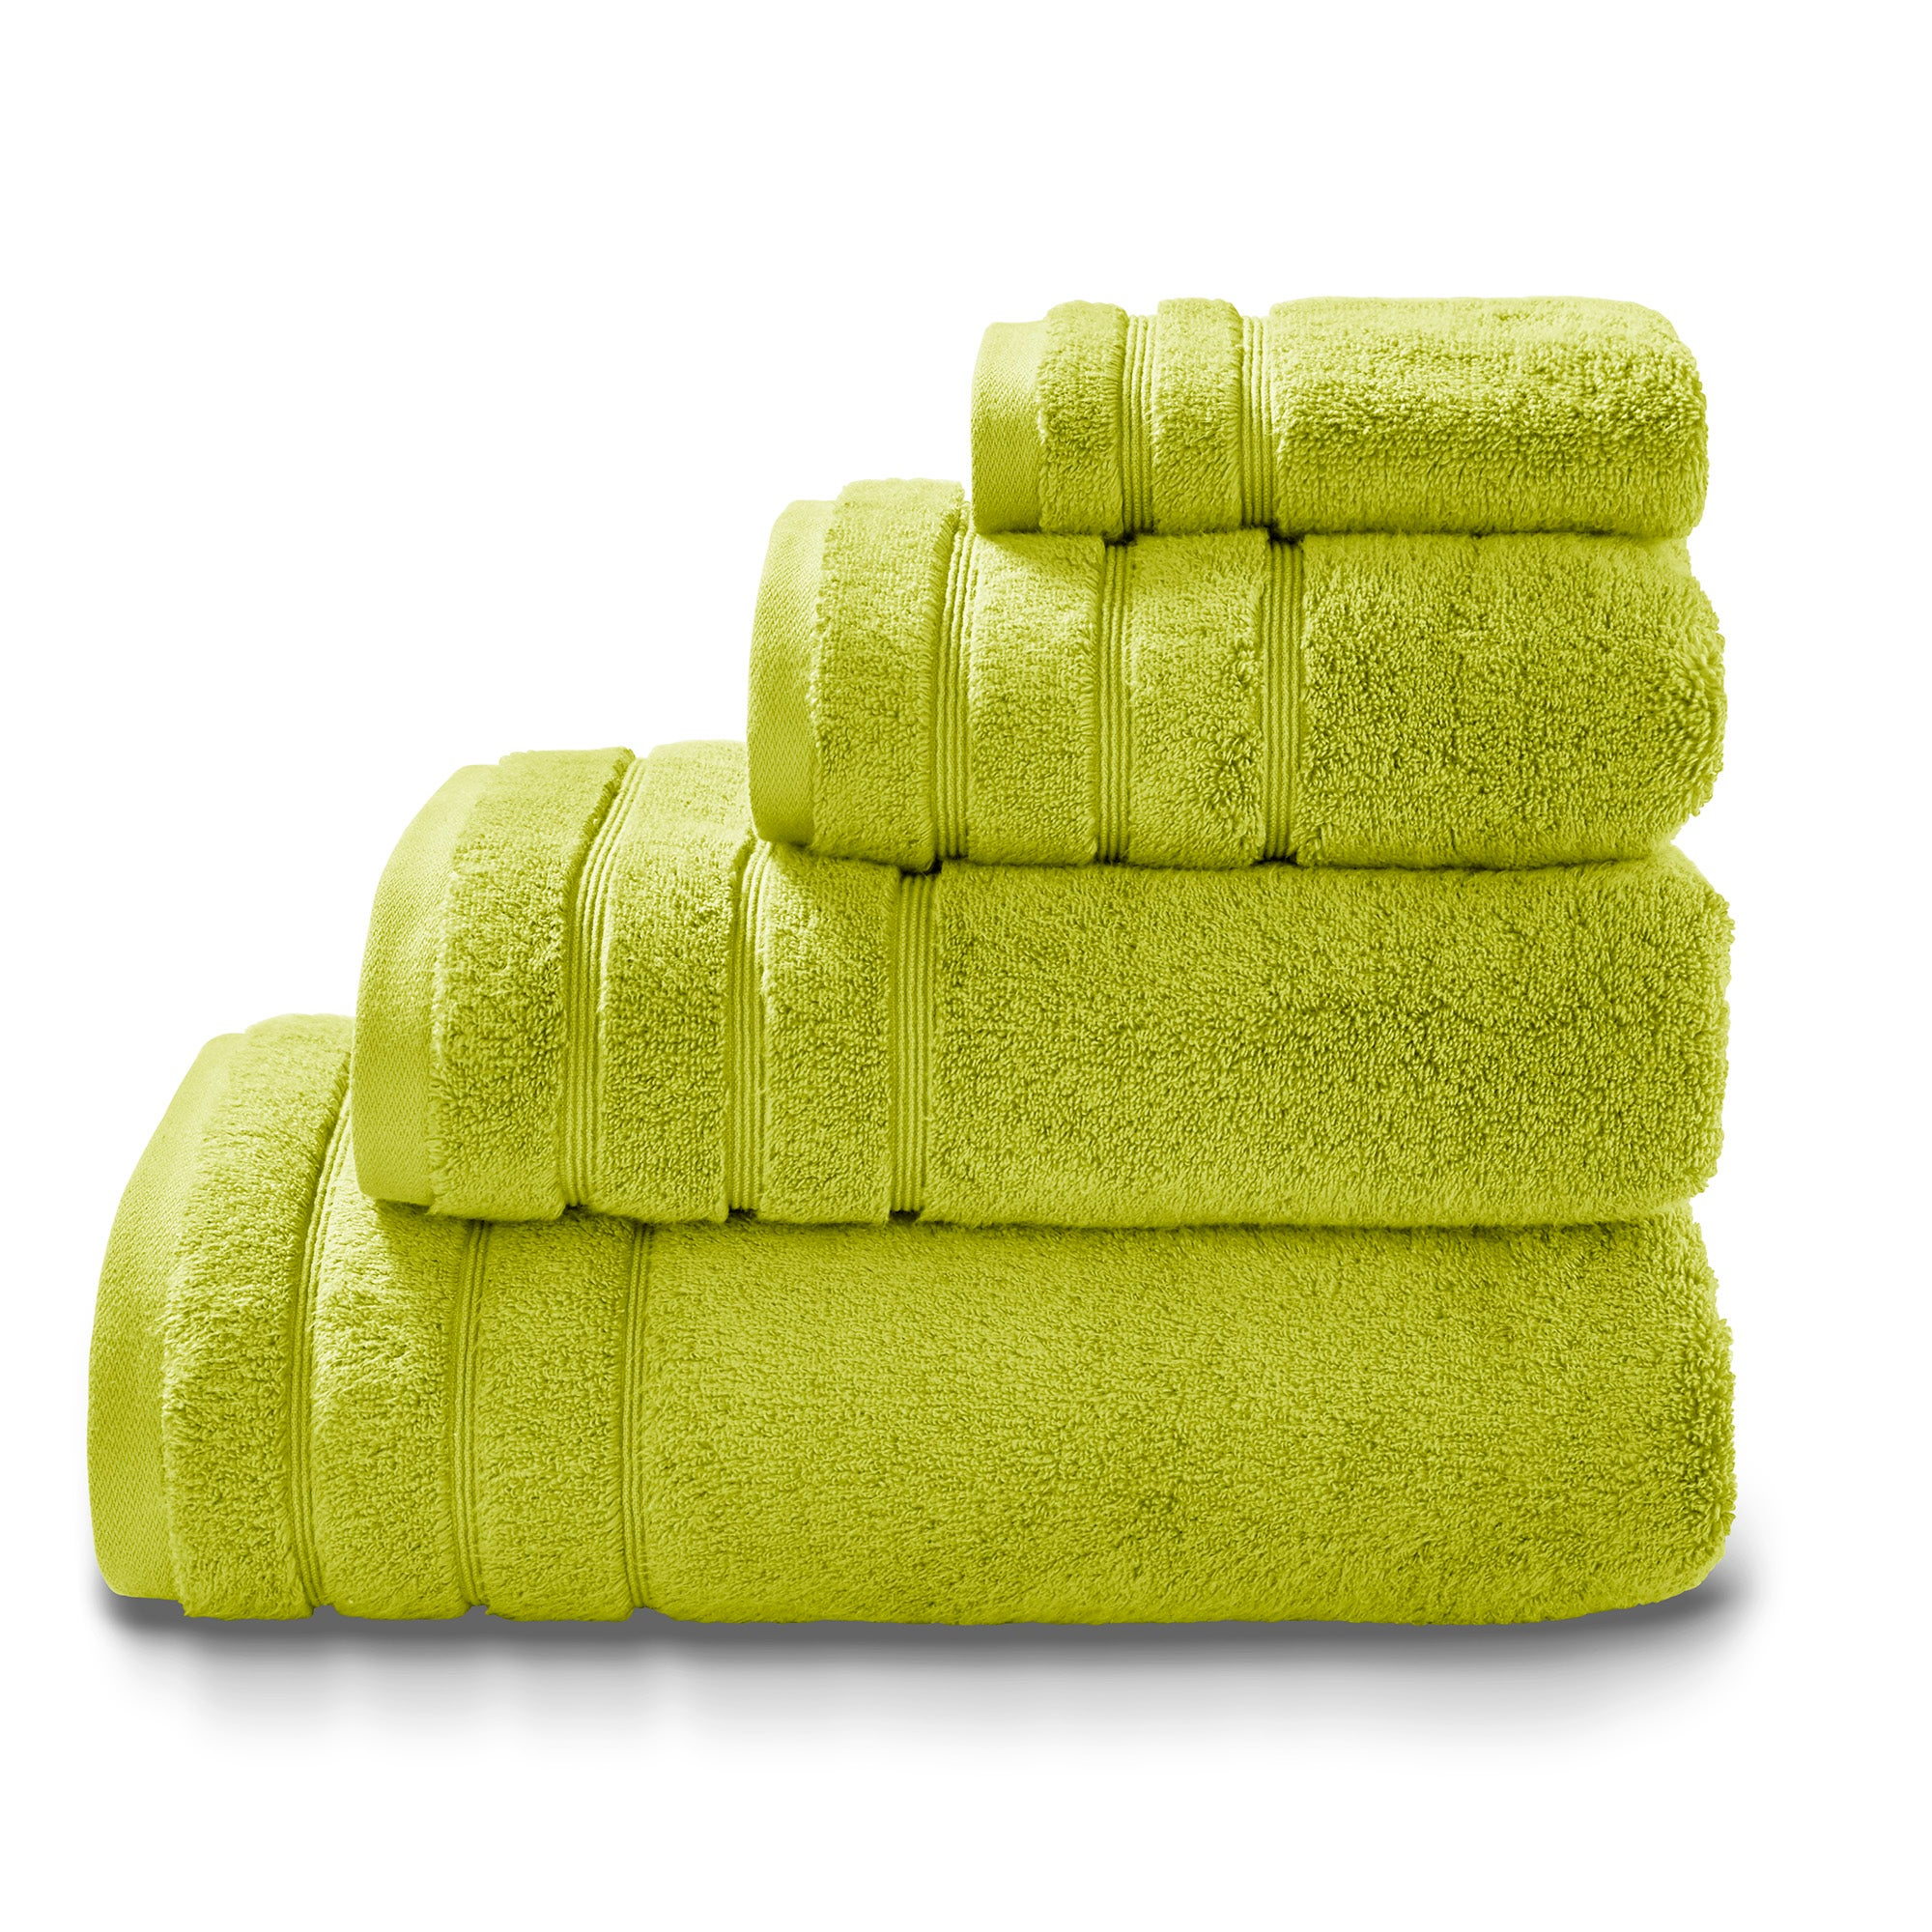 Photo of Lime ultimate towel bright -lime-